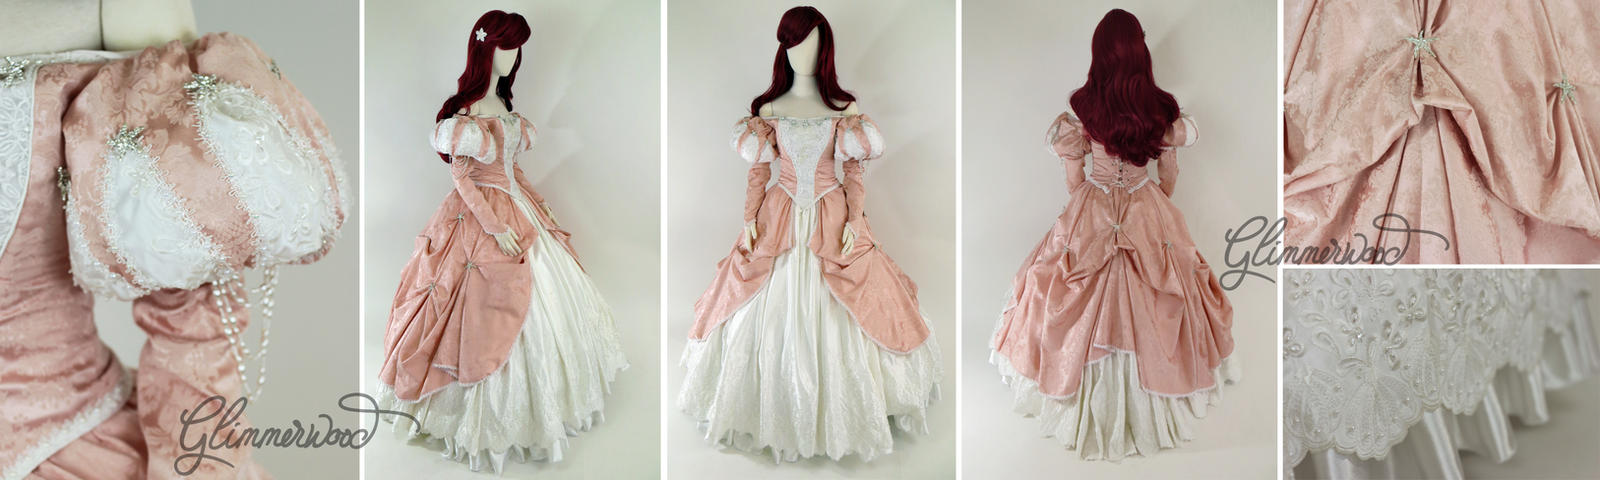 Little Mermaid Pink Ball Gown Cosplay Dress by glimmerwood on DeviantArt